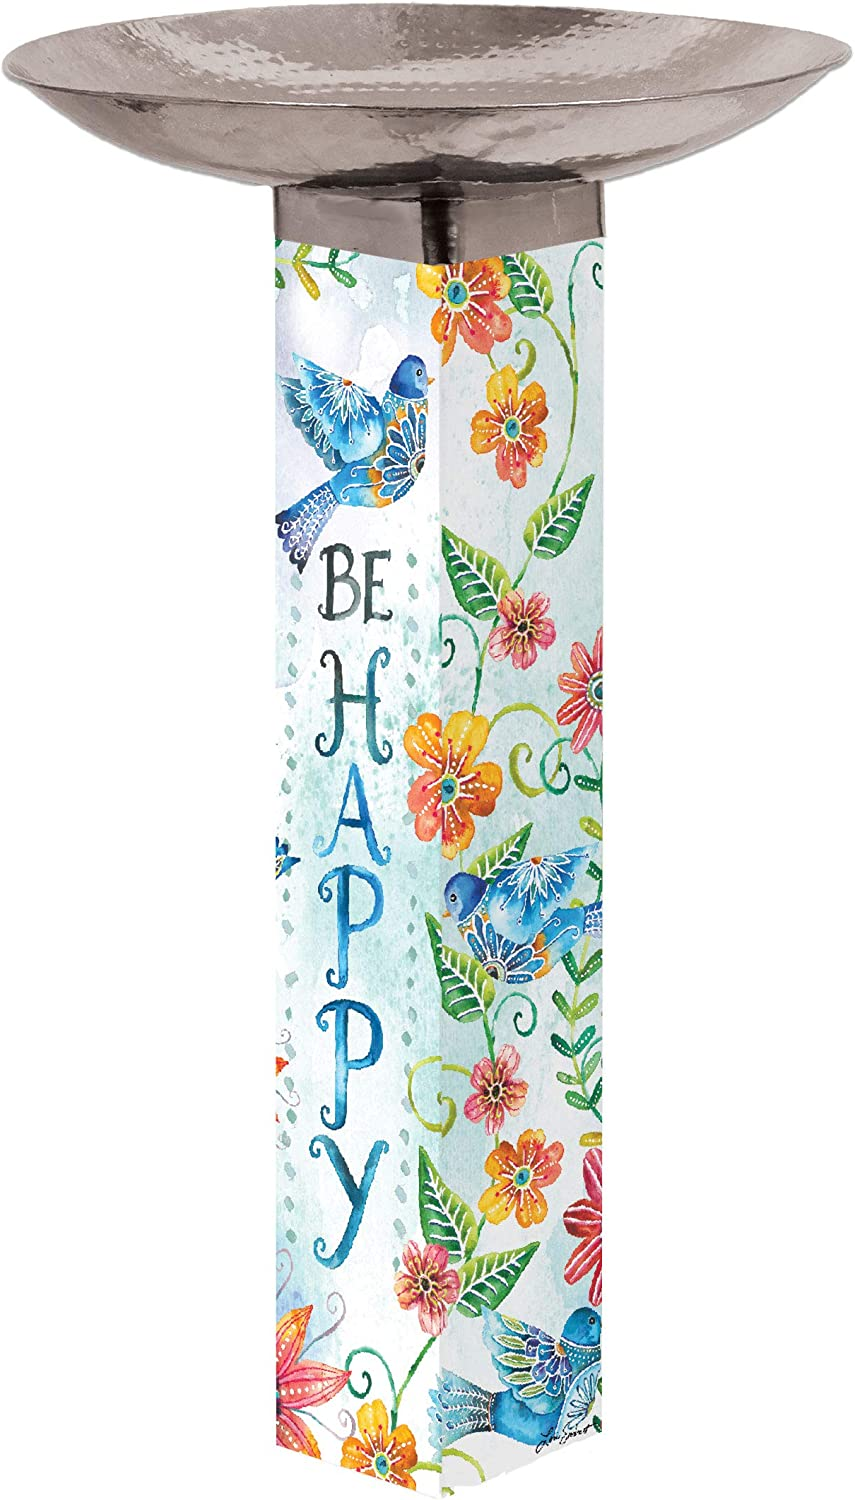 Studio M Happy Bluebirds Bird Bath Art Pole Hand-Hammered Stainless Steel Top, Hardware Included for Easy Installation, Printed in USA, 31 Inches Tall with 18 Inch Dia. Bowl